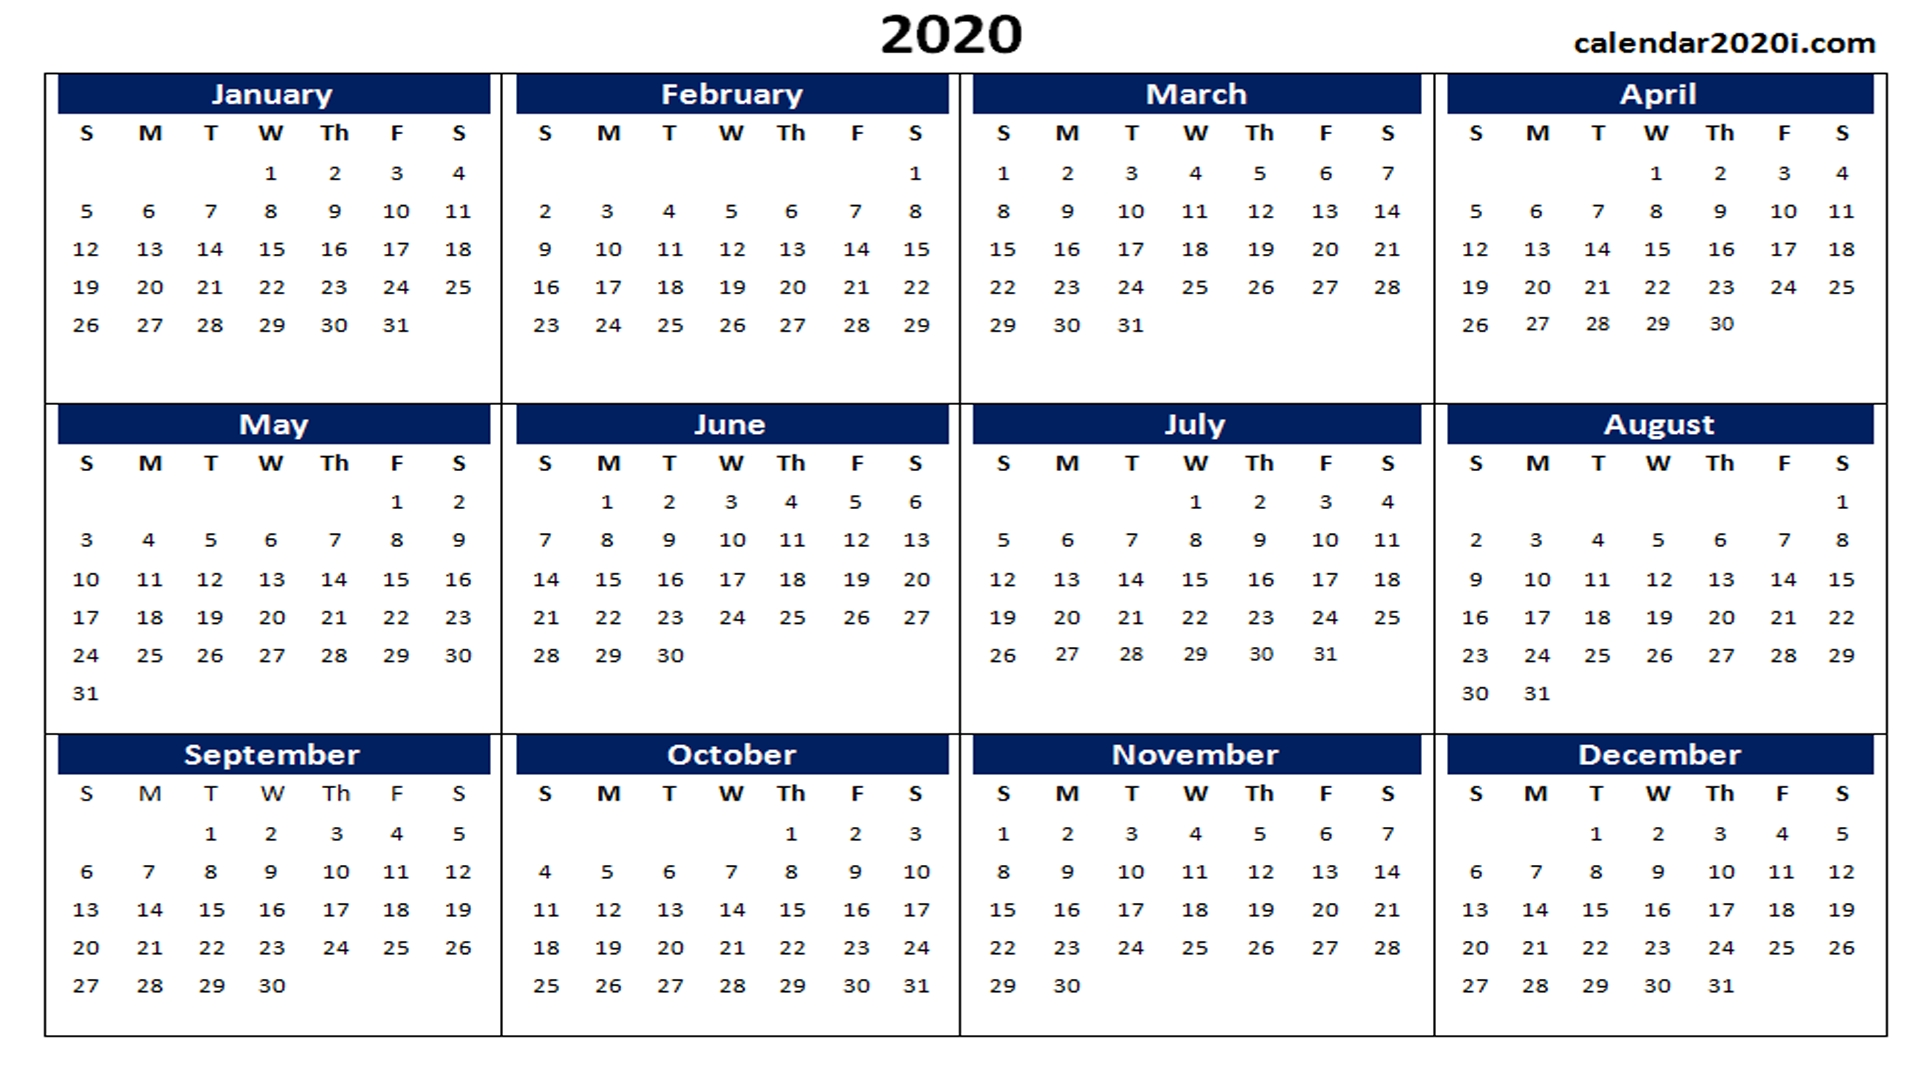 2020 Calendar Printable Template Holidays, Word, Excel, Pdf, Wallpaper for Free Printable Calendar 2020 Motivational